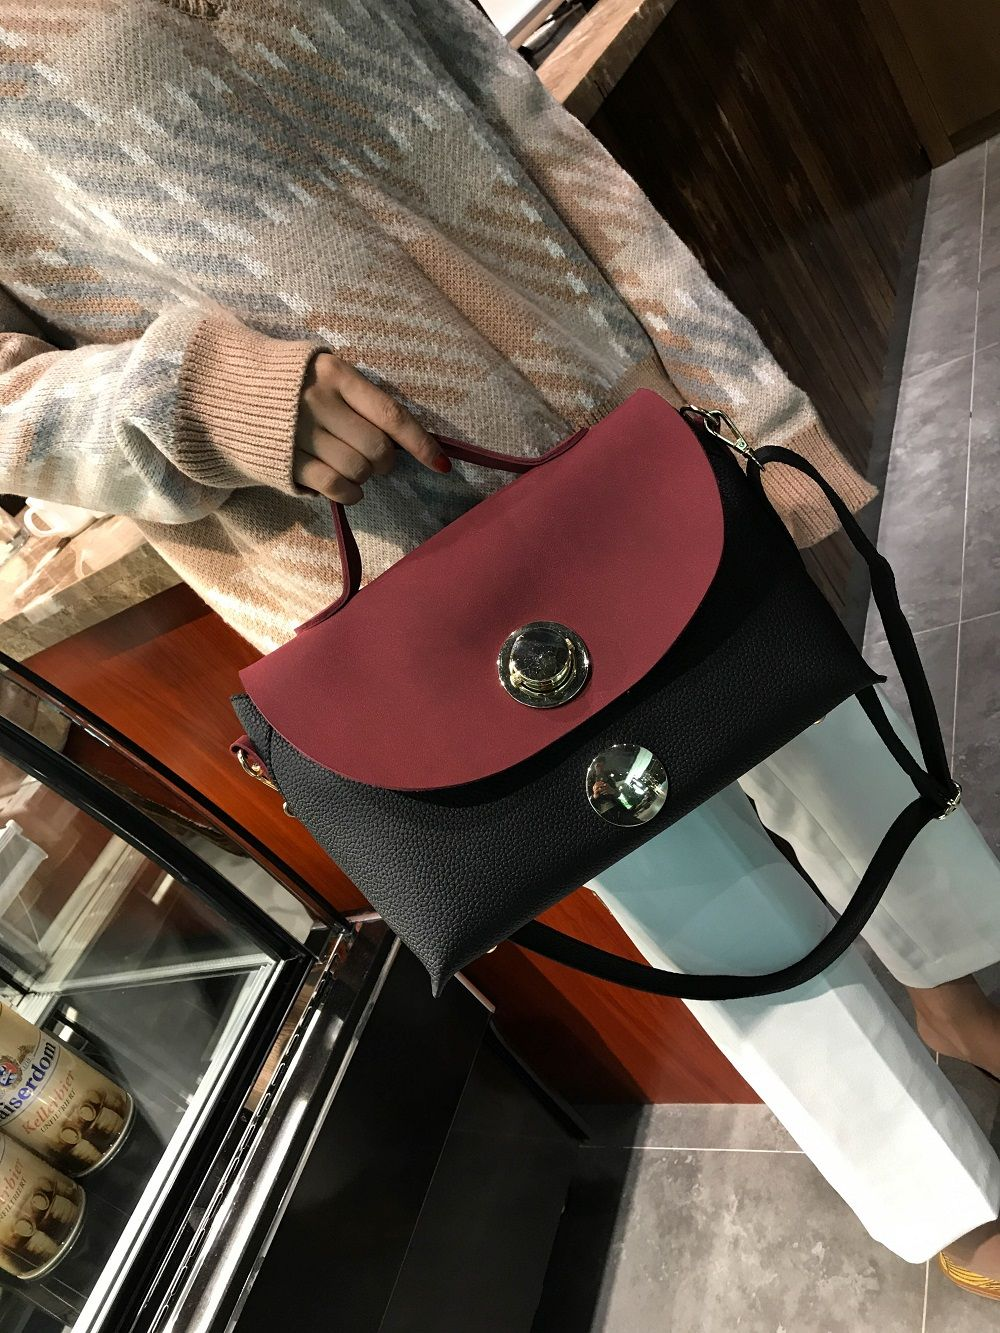 2018 New Handbag Fashion Handbag Lock All-Match Color Diagonal Shoulder Bag